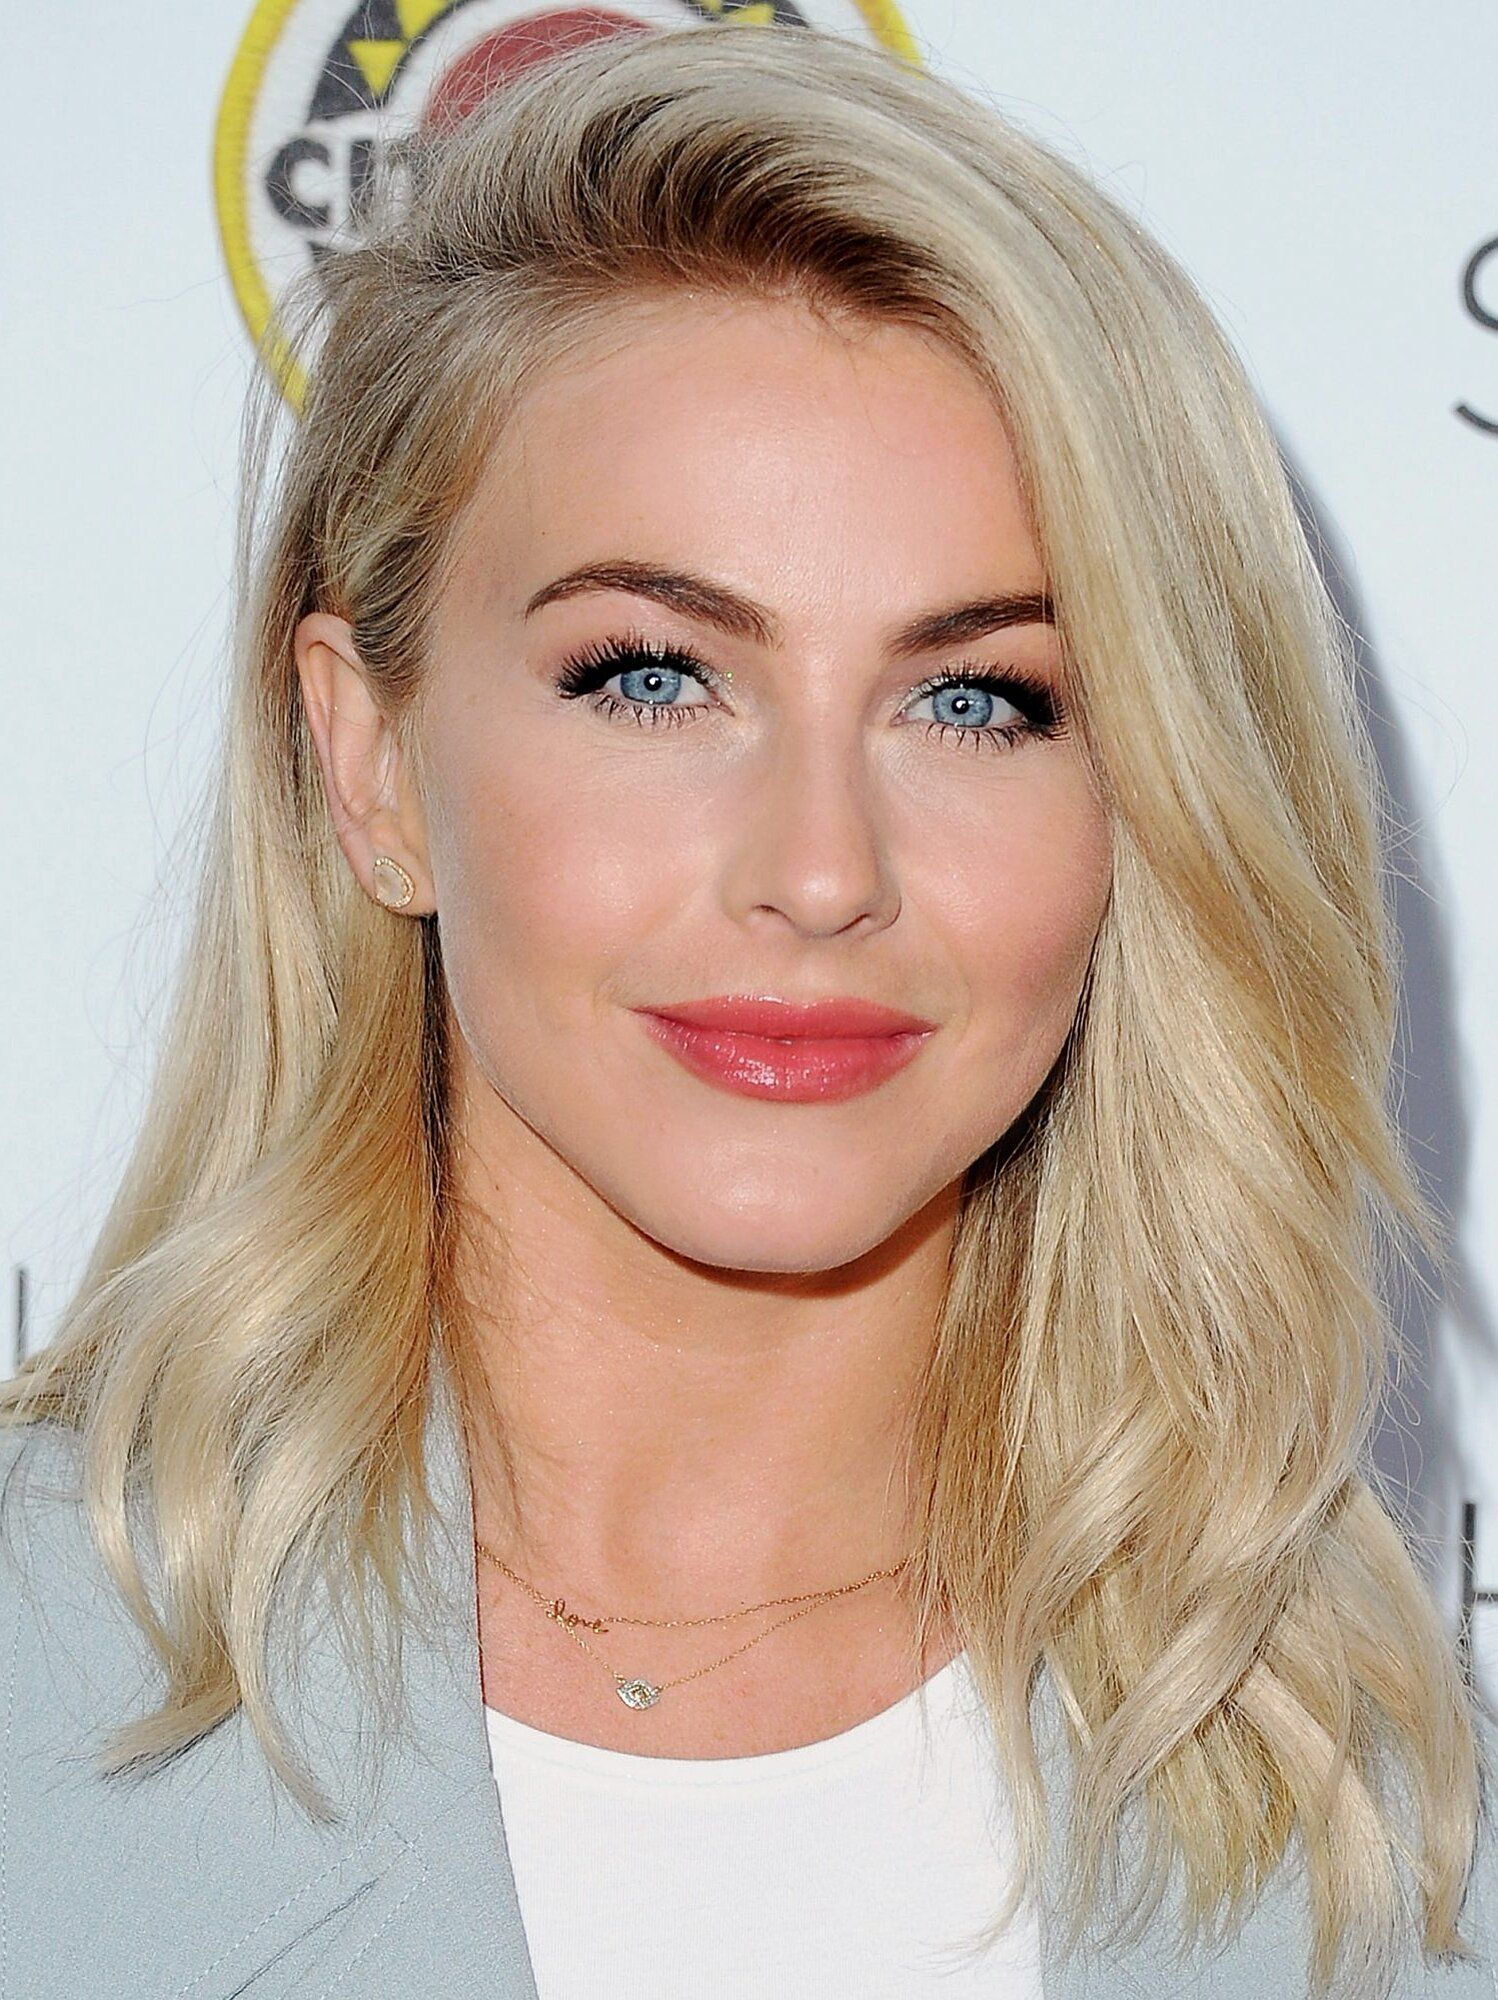 The Best Blonde Hair For Your Skin Tone In 2020 Blonde Hair Pale Skin Hair Pale Skin Blonde Hair Color